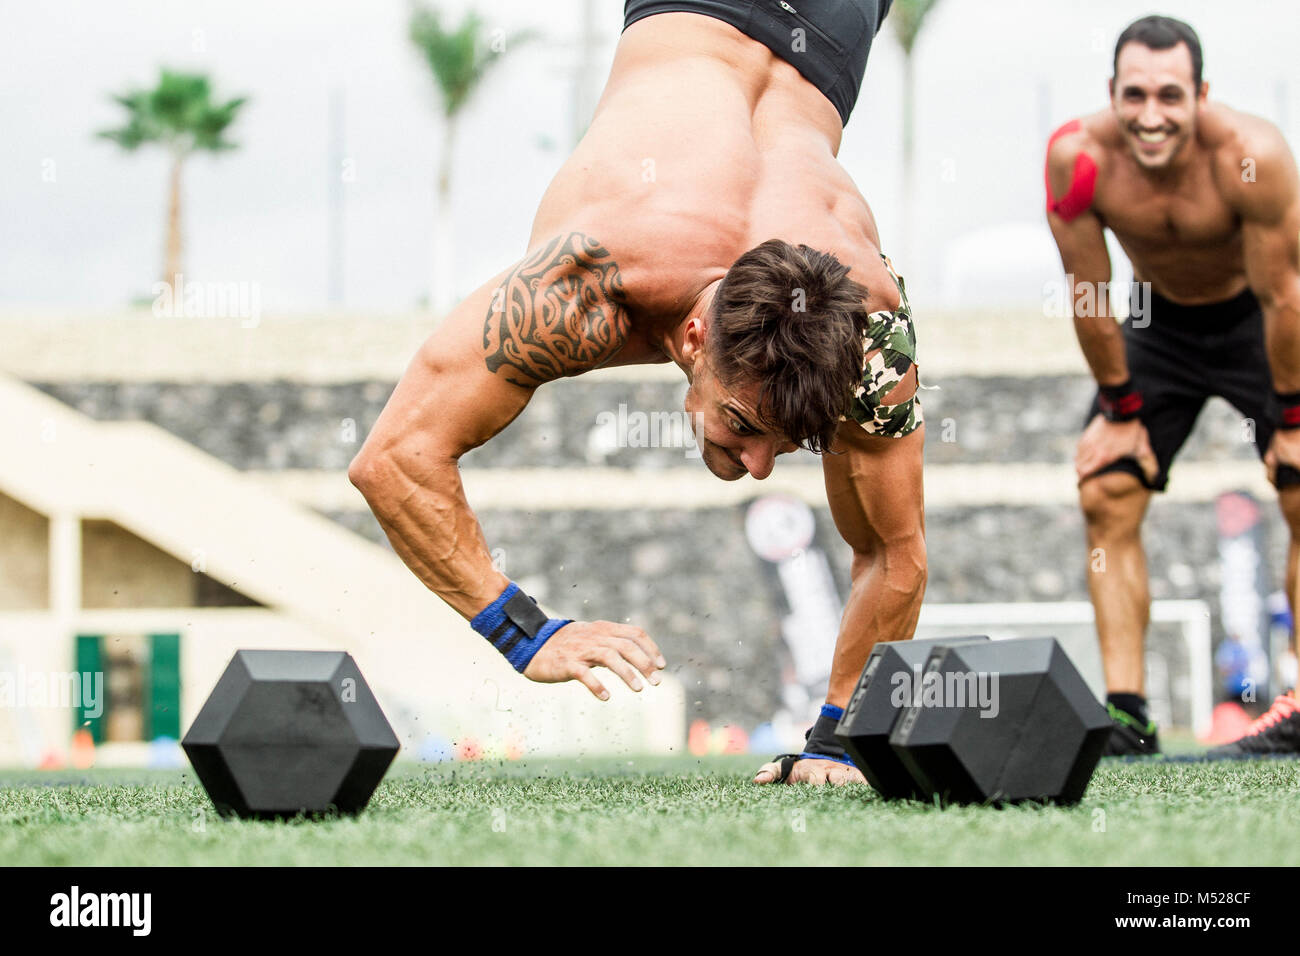 Man doing handstand durant la compétition crossfit, Tenerife, Canaries, Espagne Photo Stock